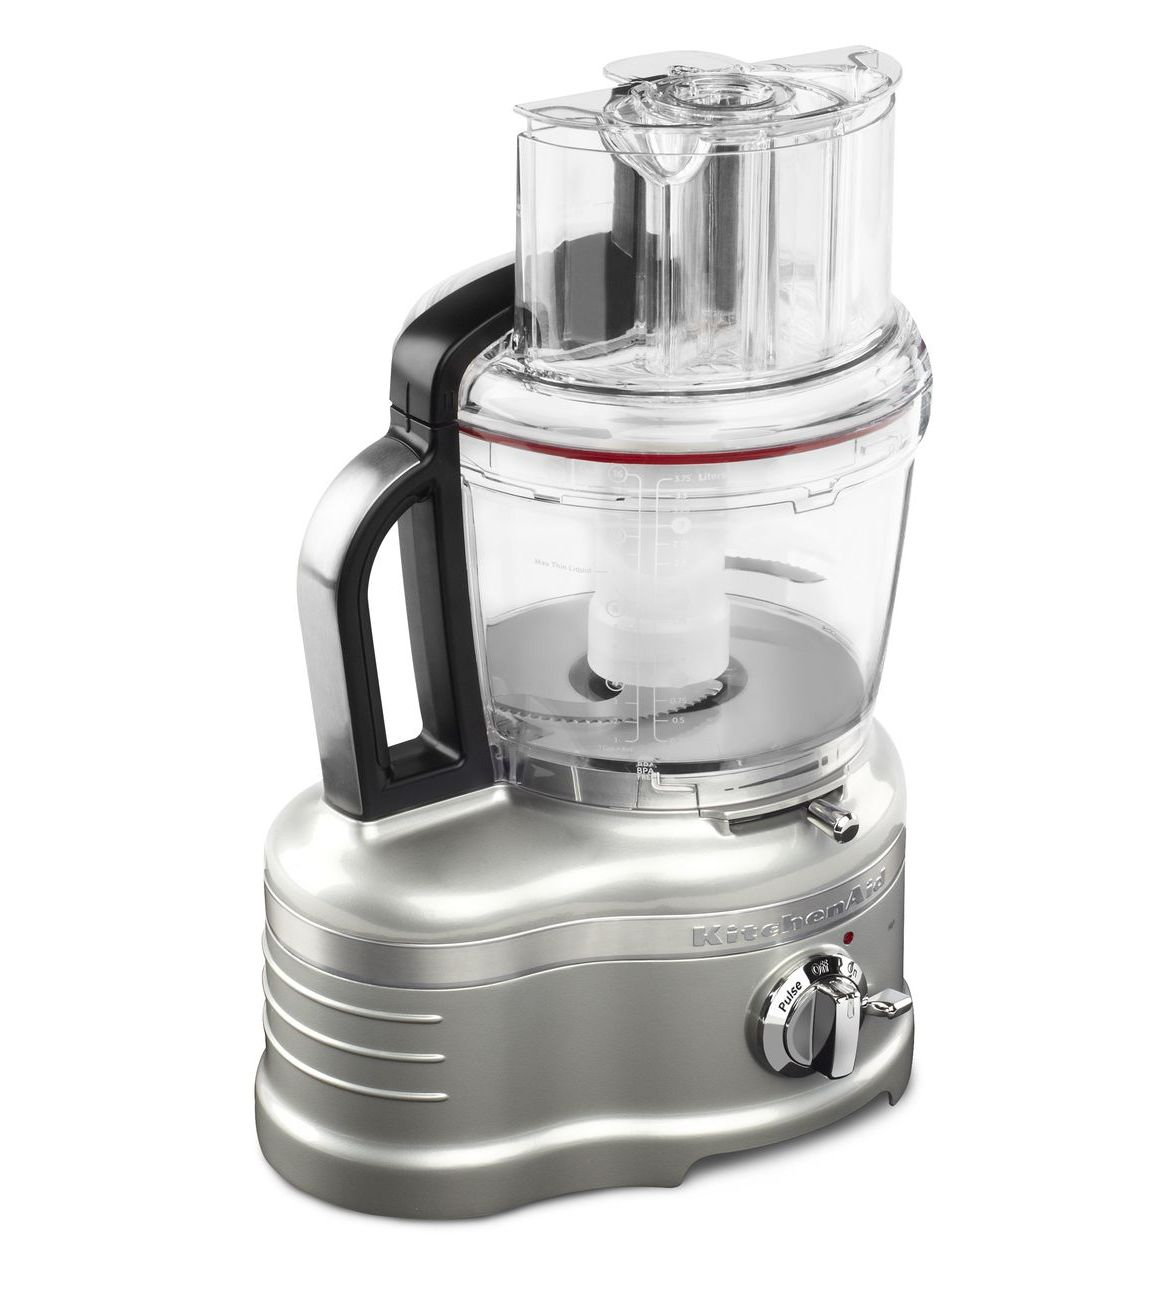 Kitchenaid proline 16 cup food processor sugar pearl silver for Kitchenaid food processor